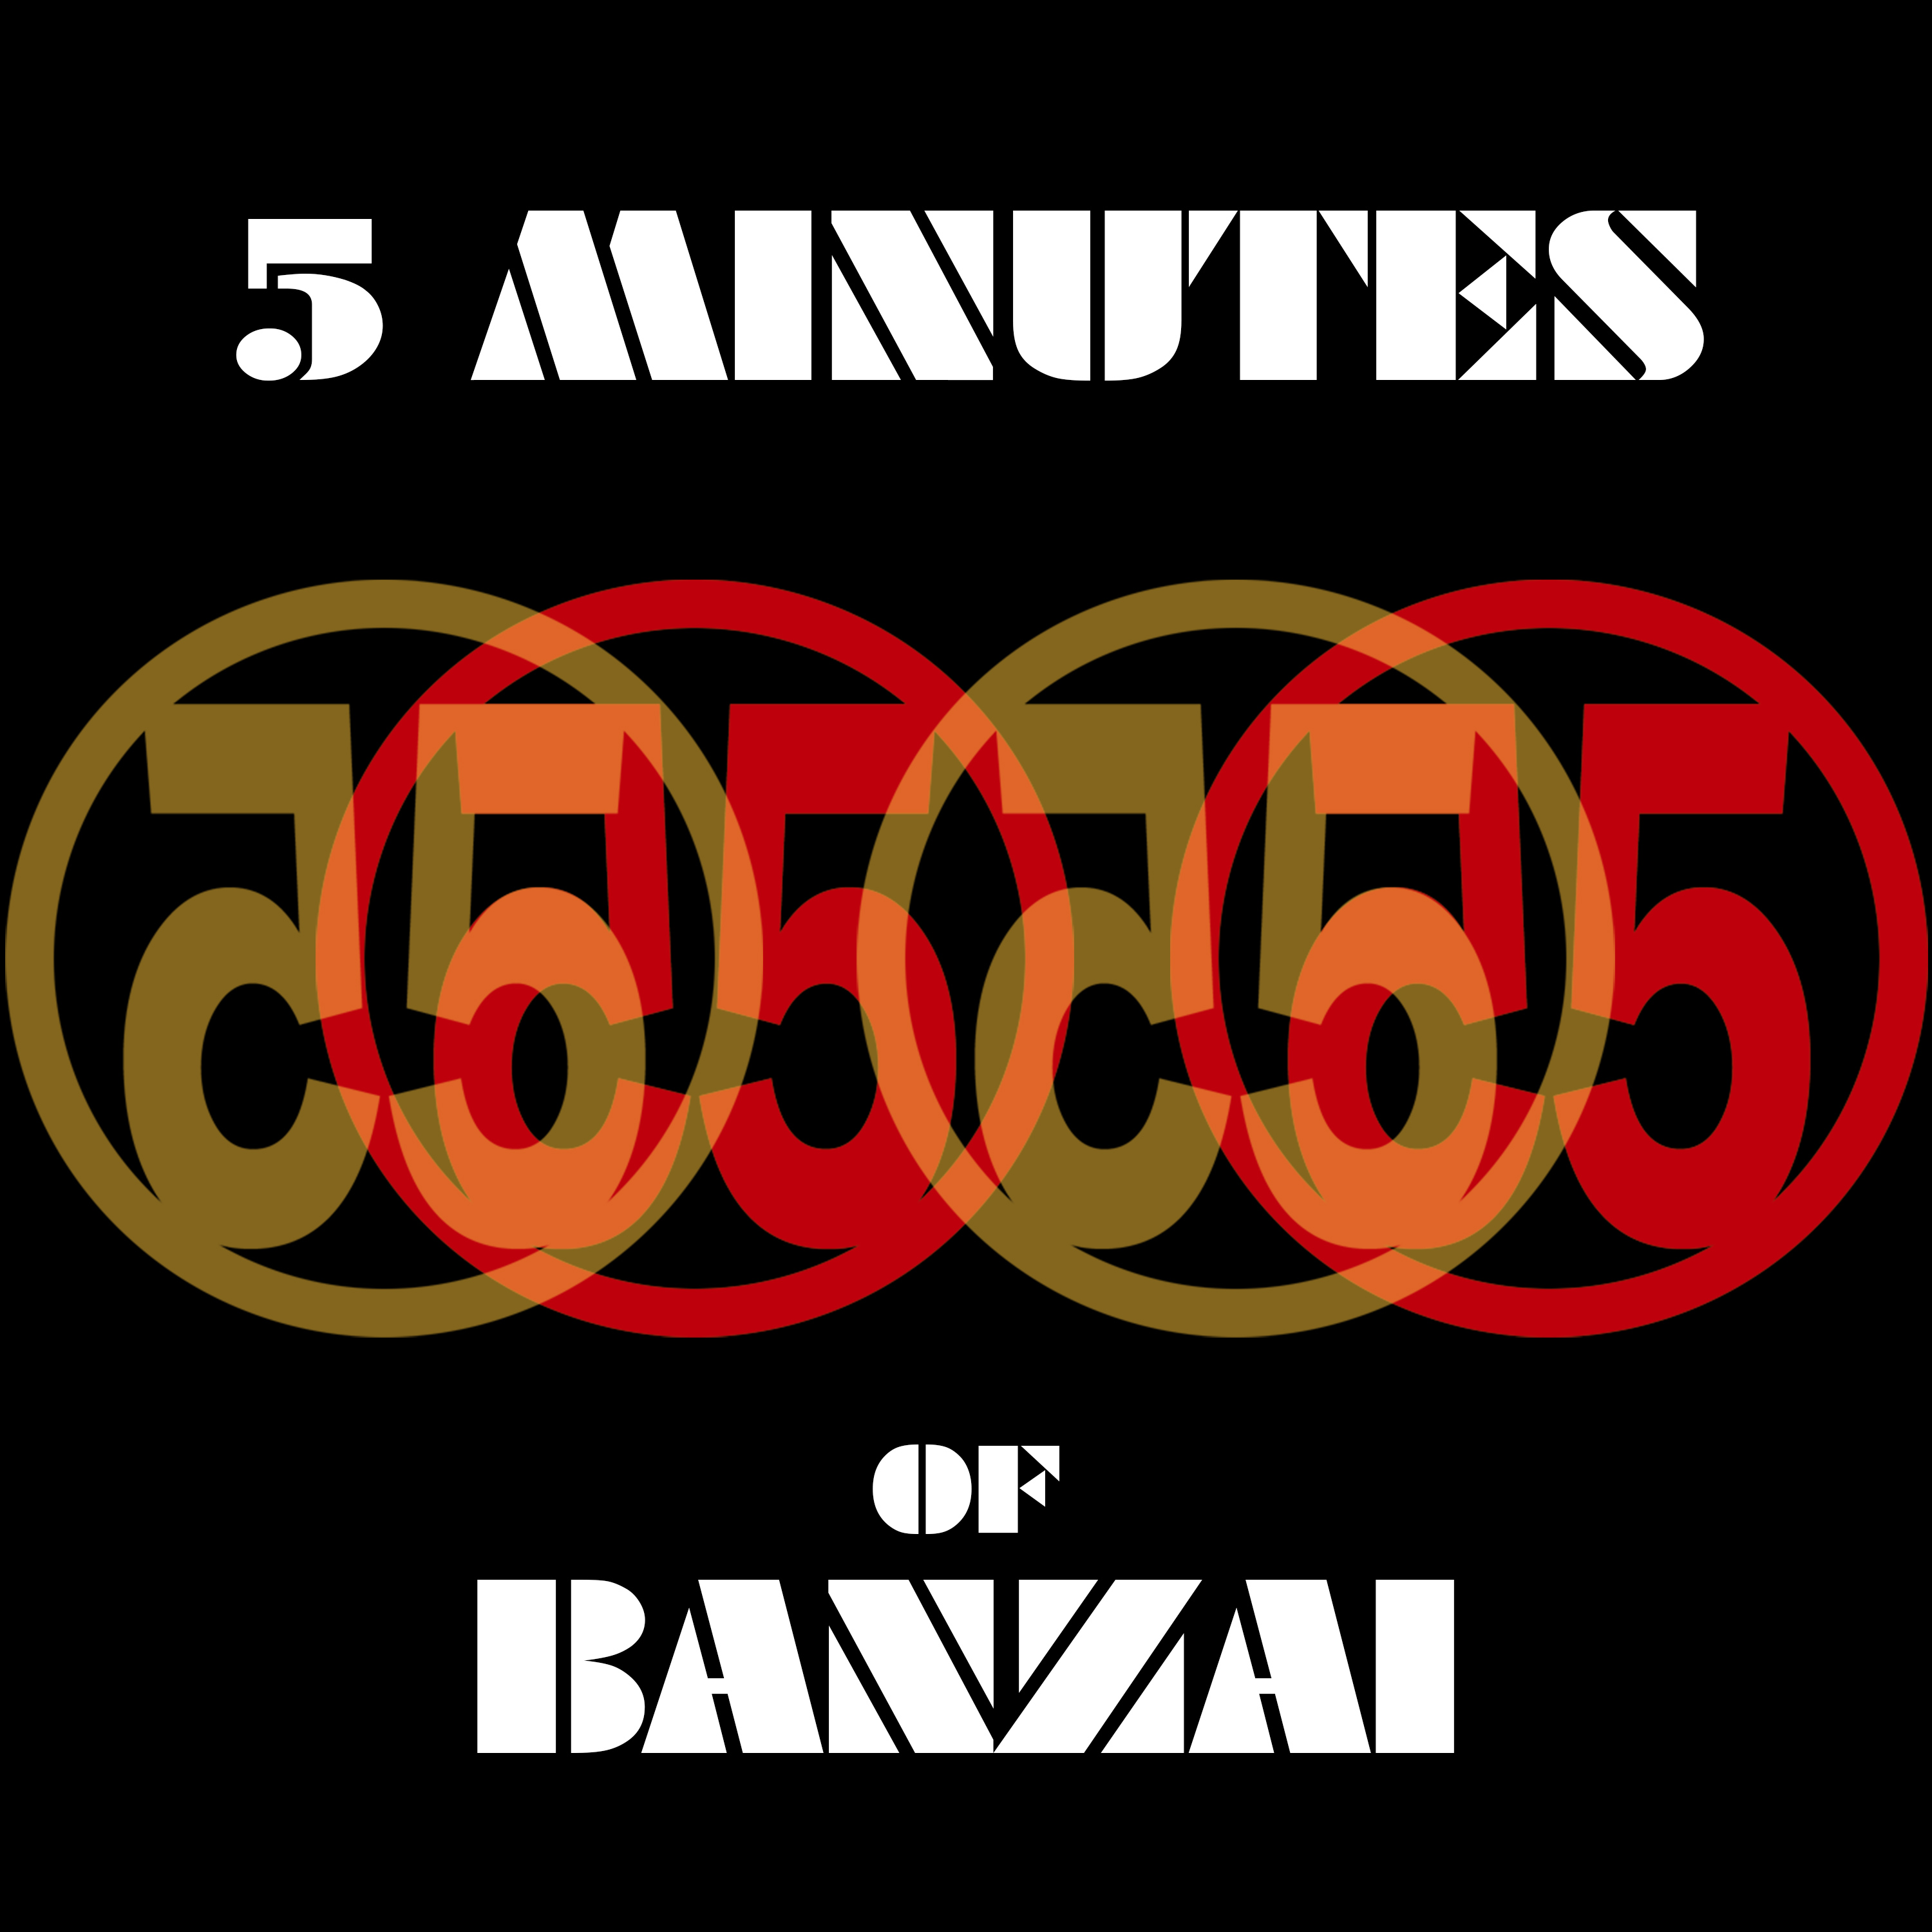 5 Minutes of Banzai: The Podcast